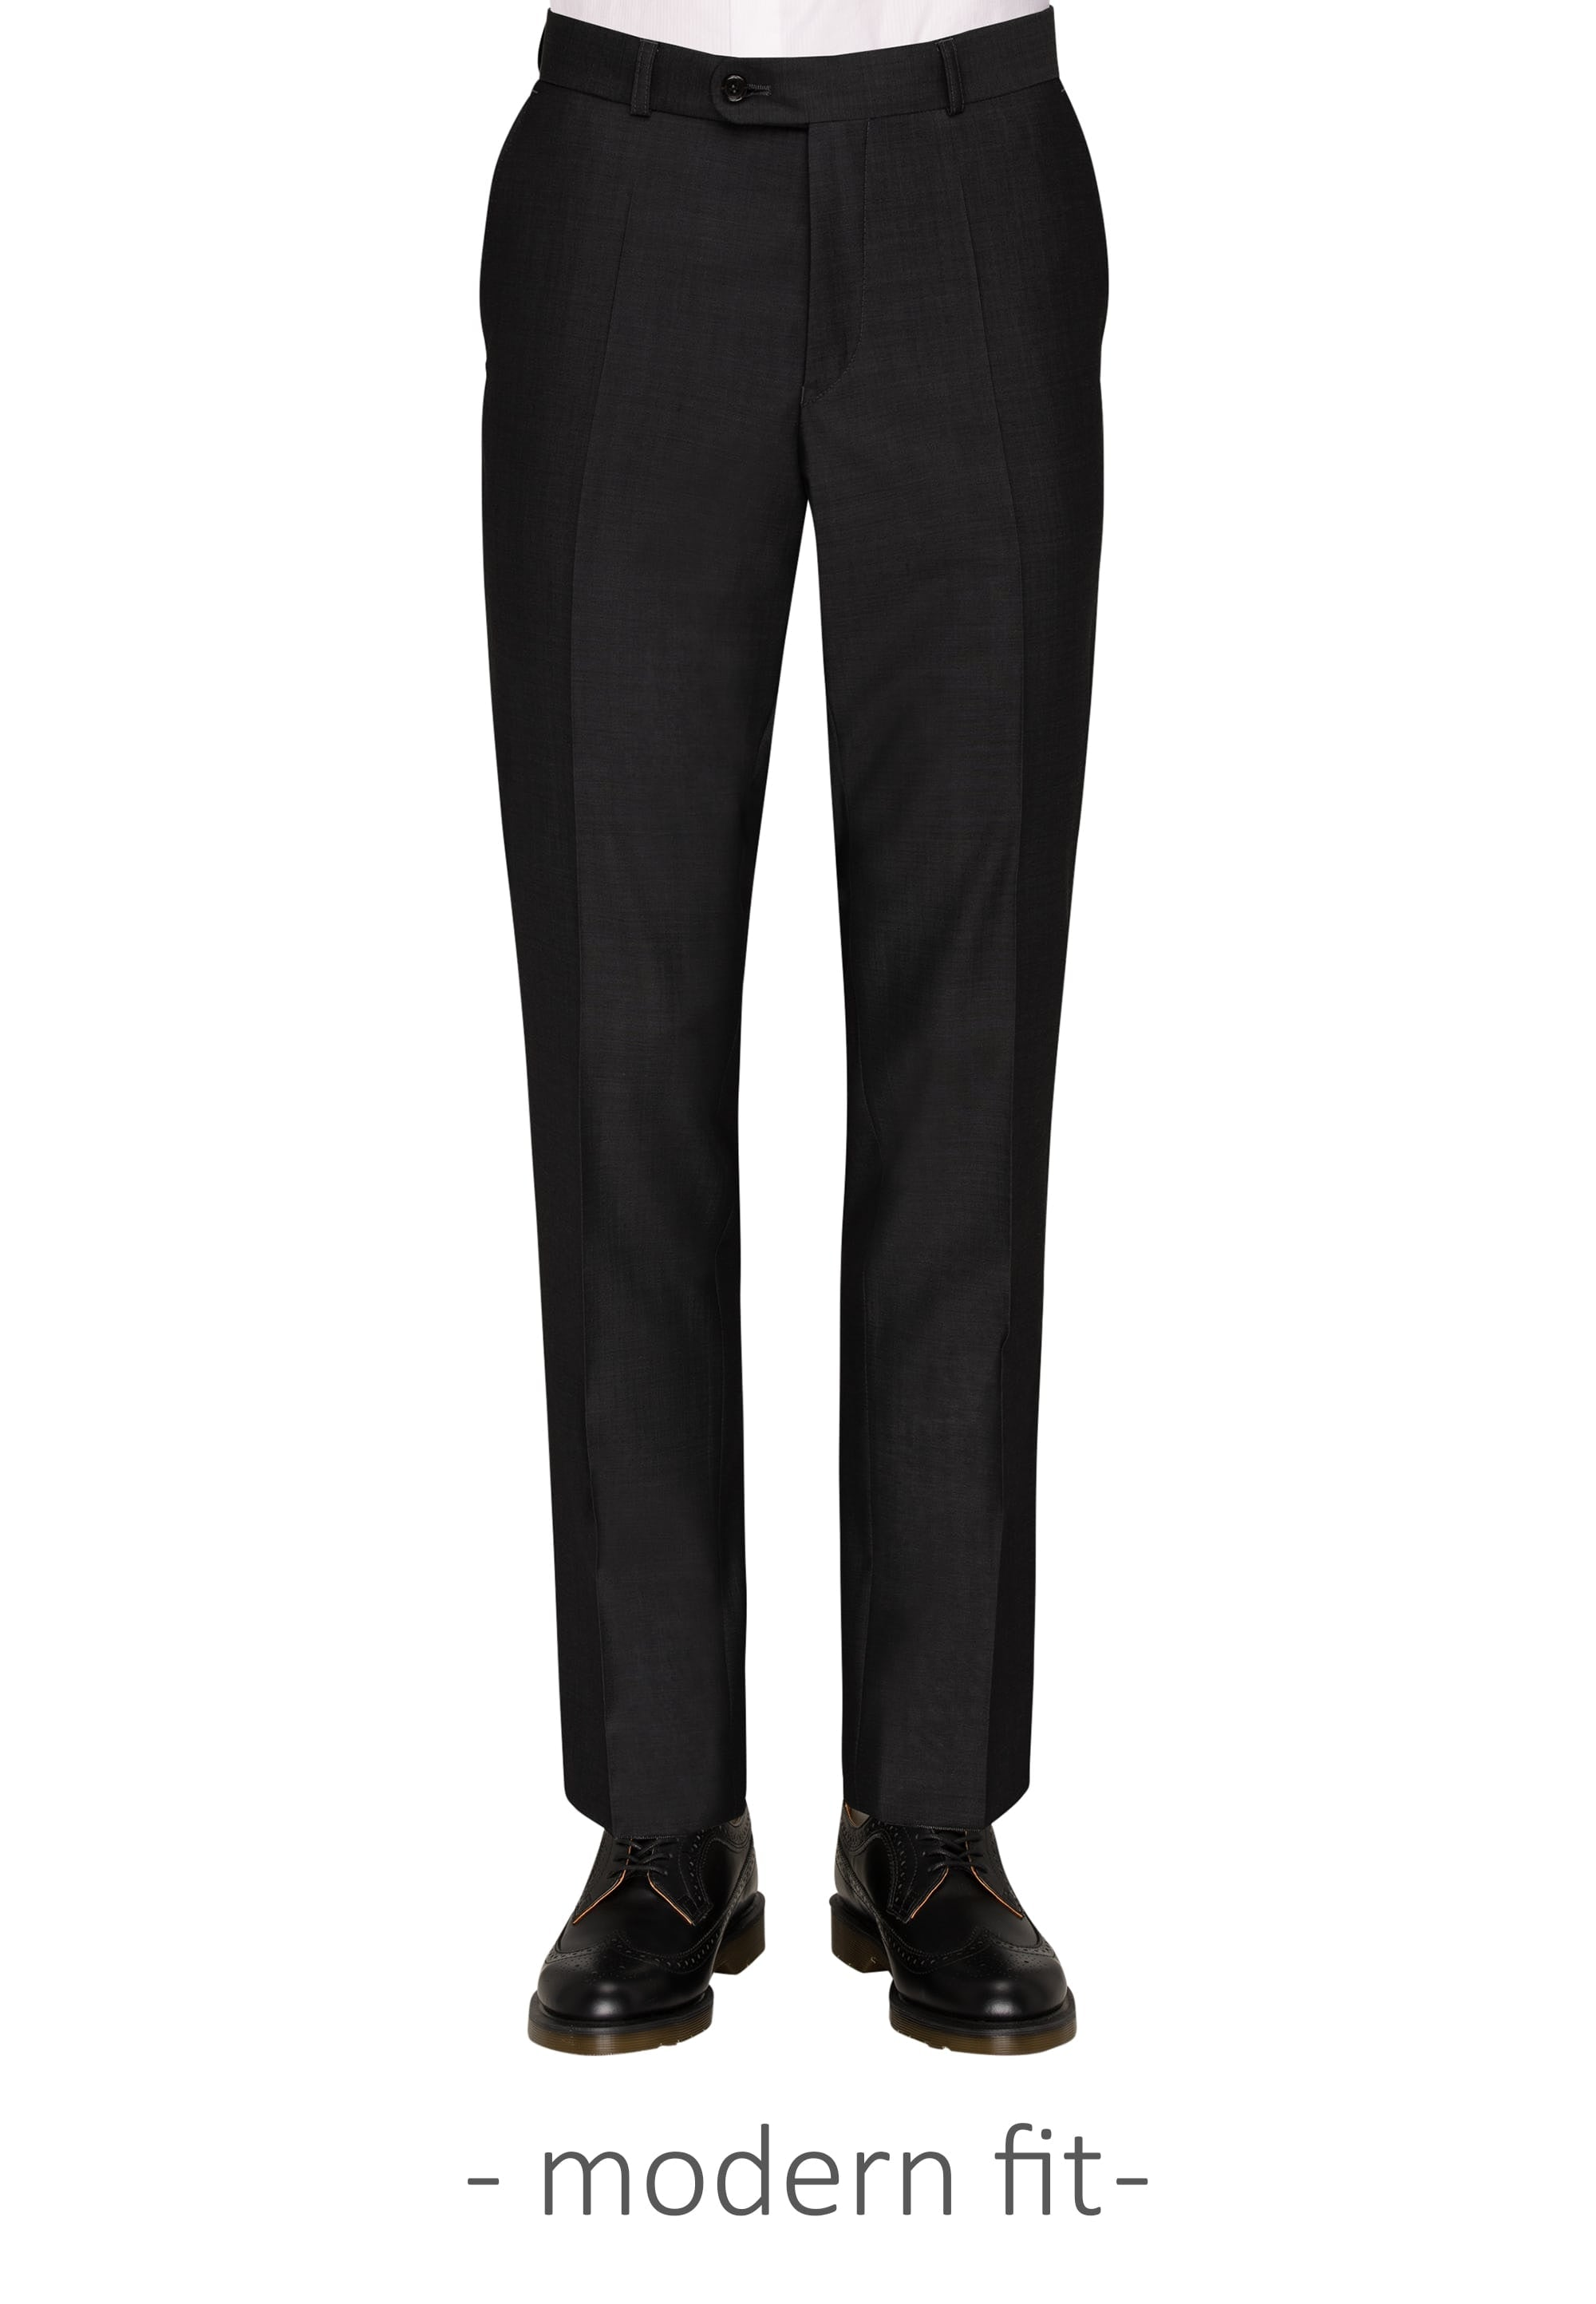 Carl Gross Black Trousers (Piece 2)